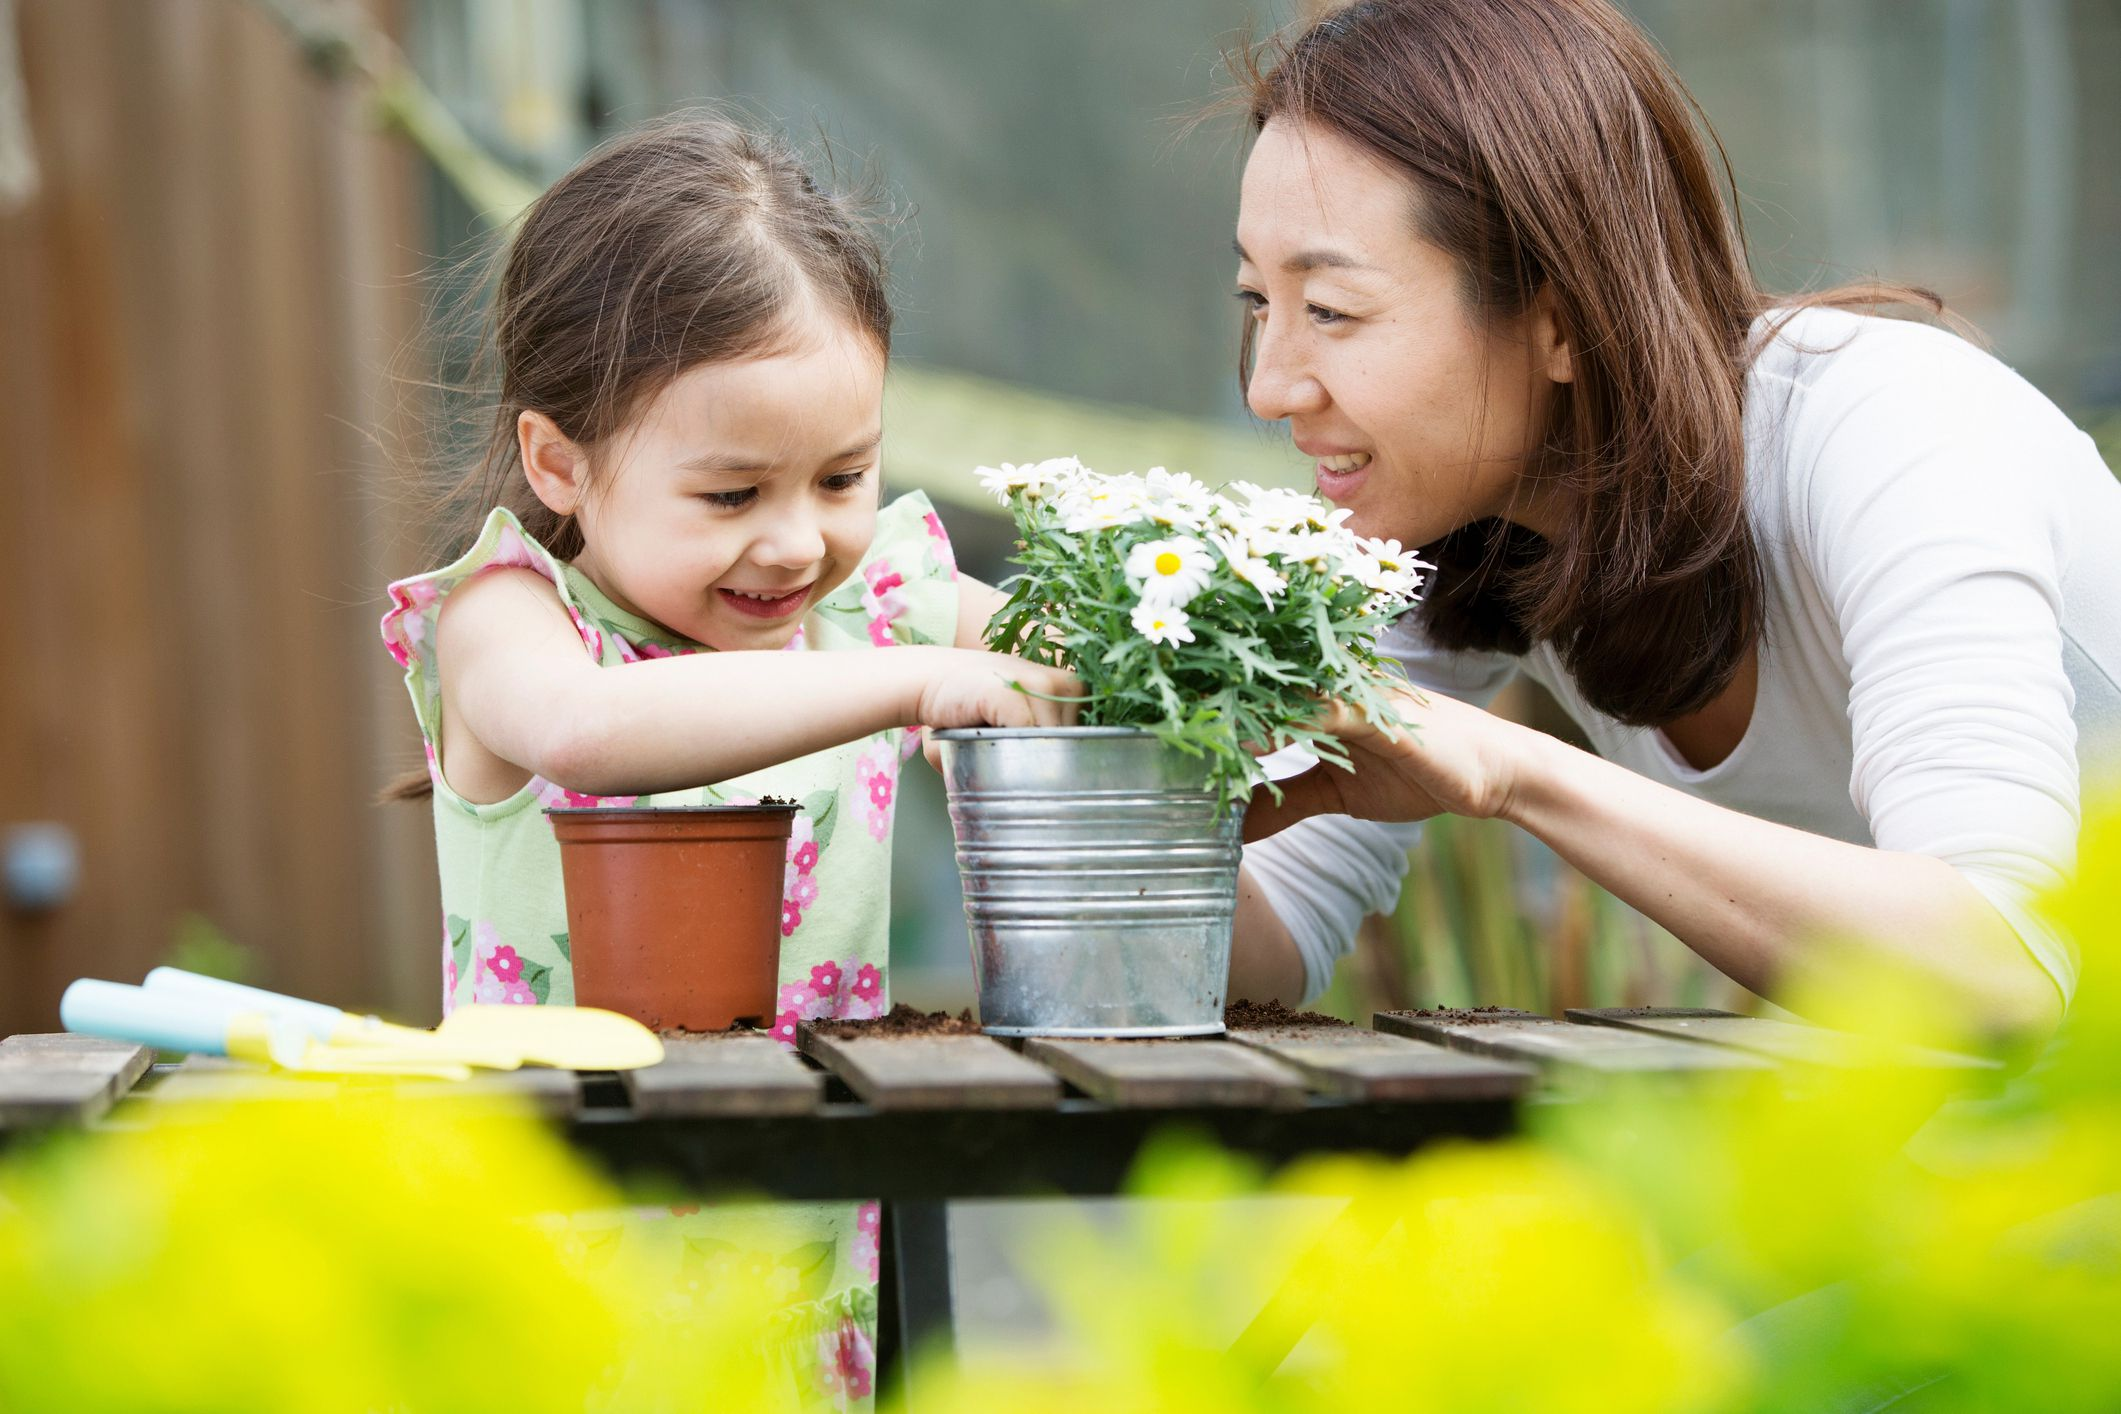 Steps for Repotting Your Houseplants